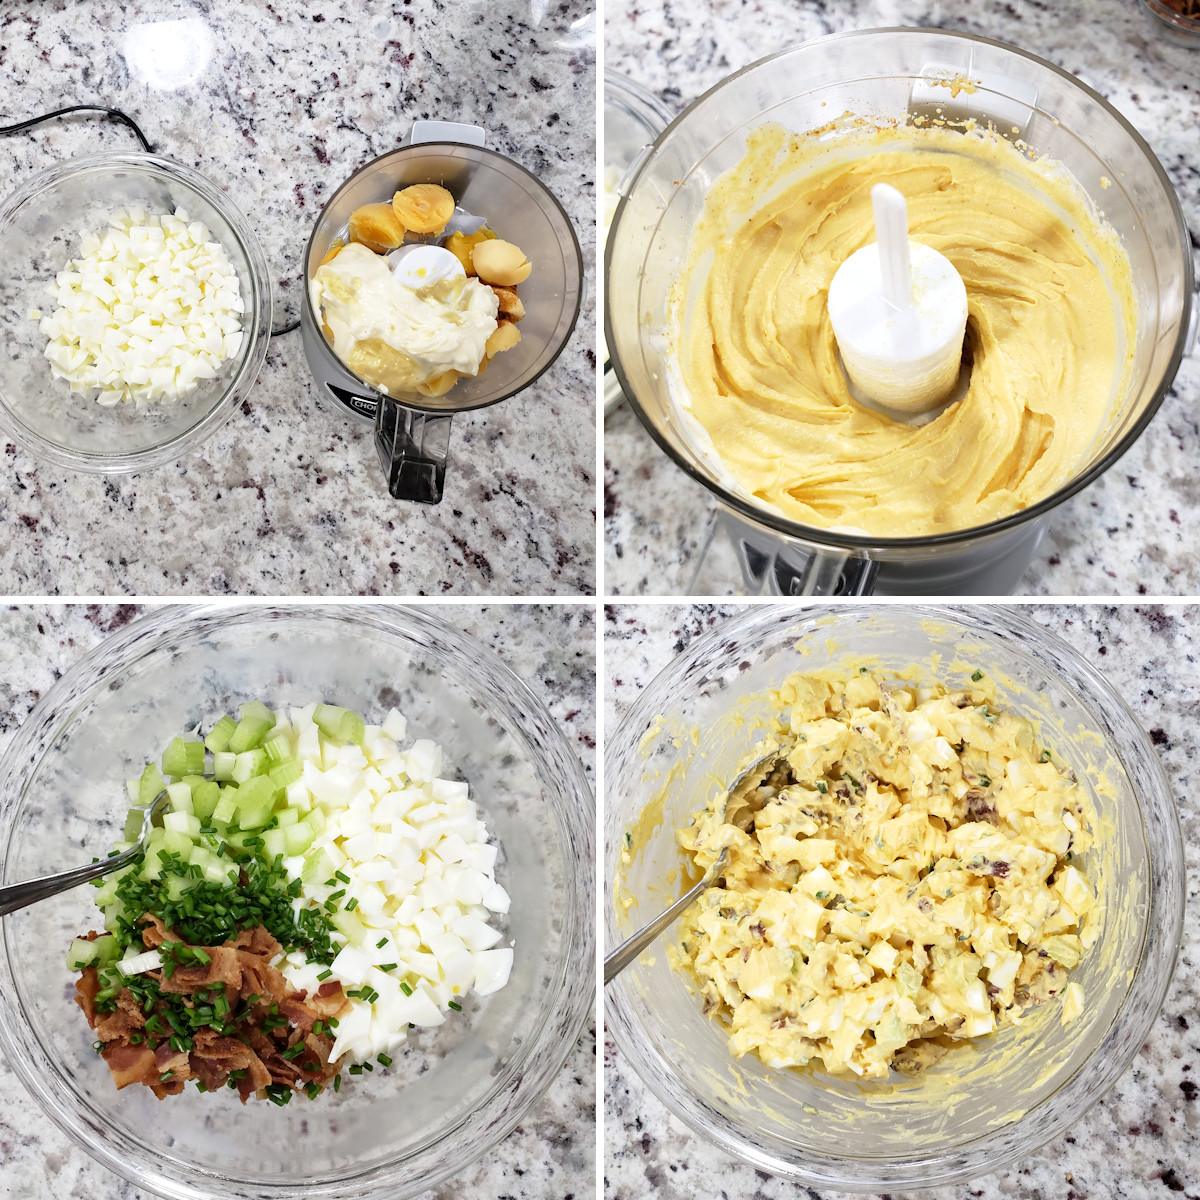 Mixing egg salad together.